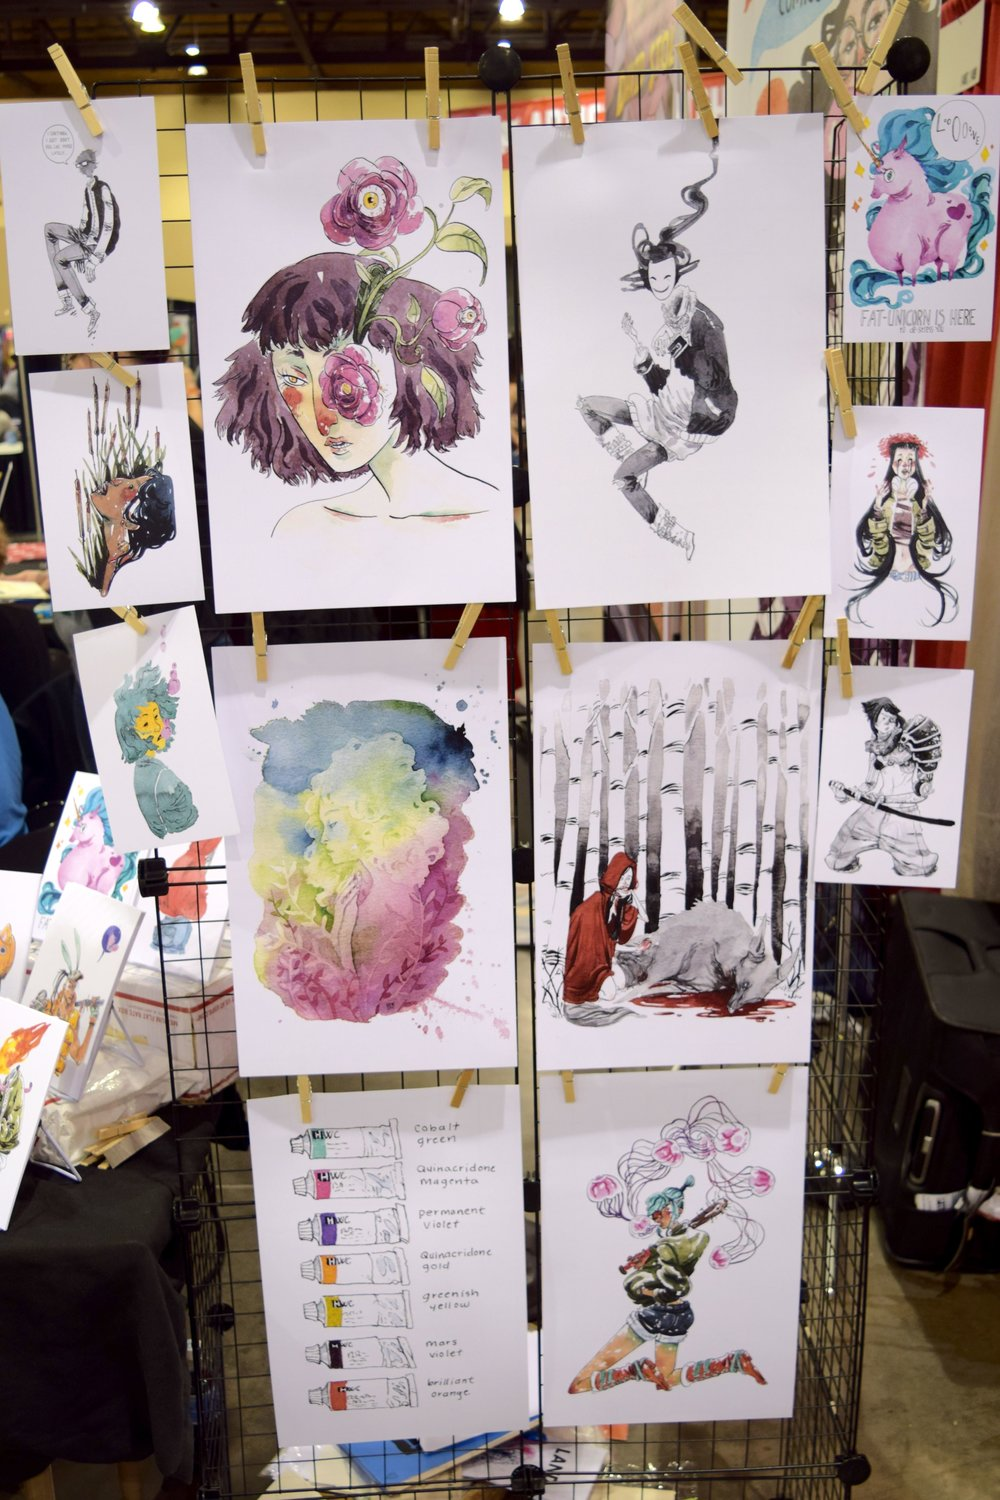 Some of the art available from Morgan Beem at Phoenix Comic Fest 2018.